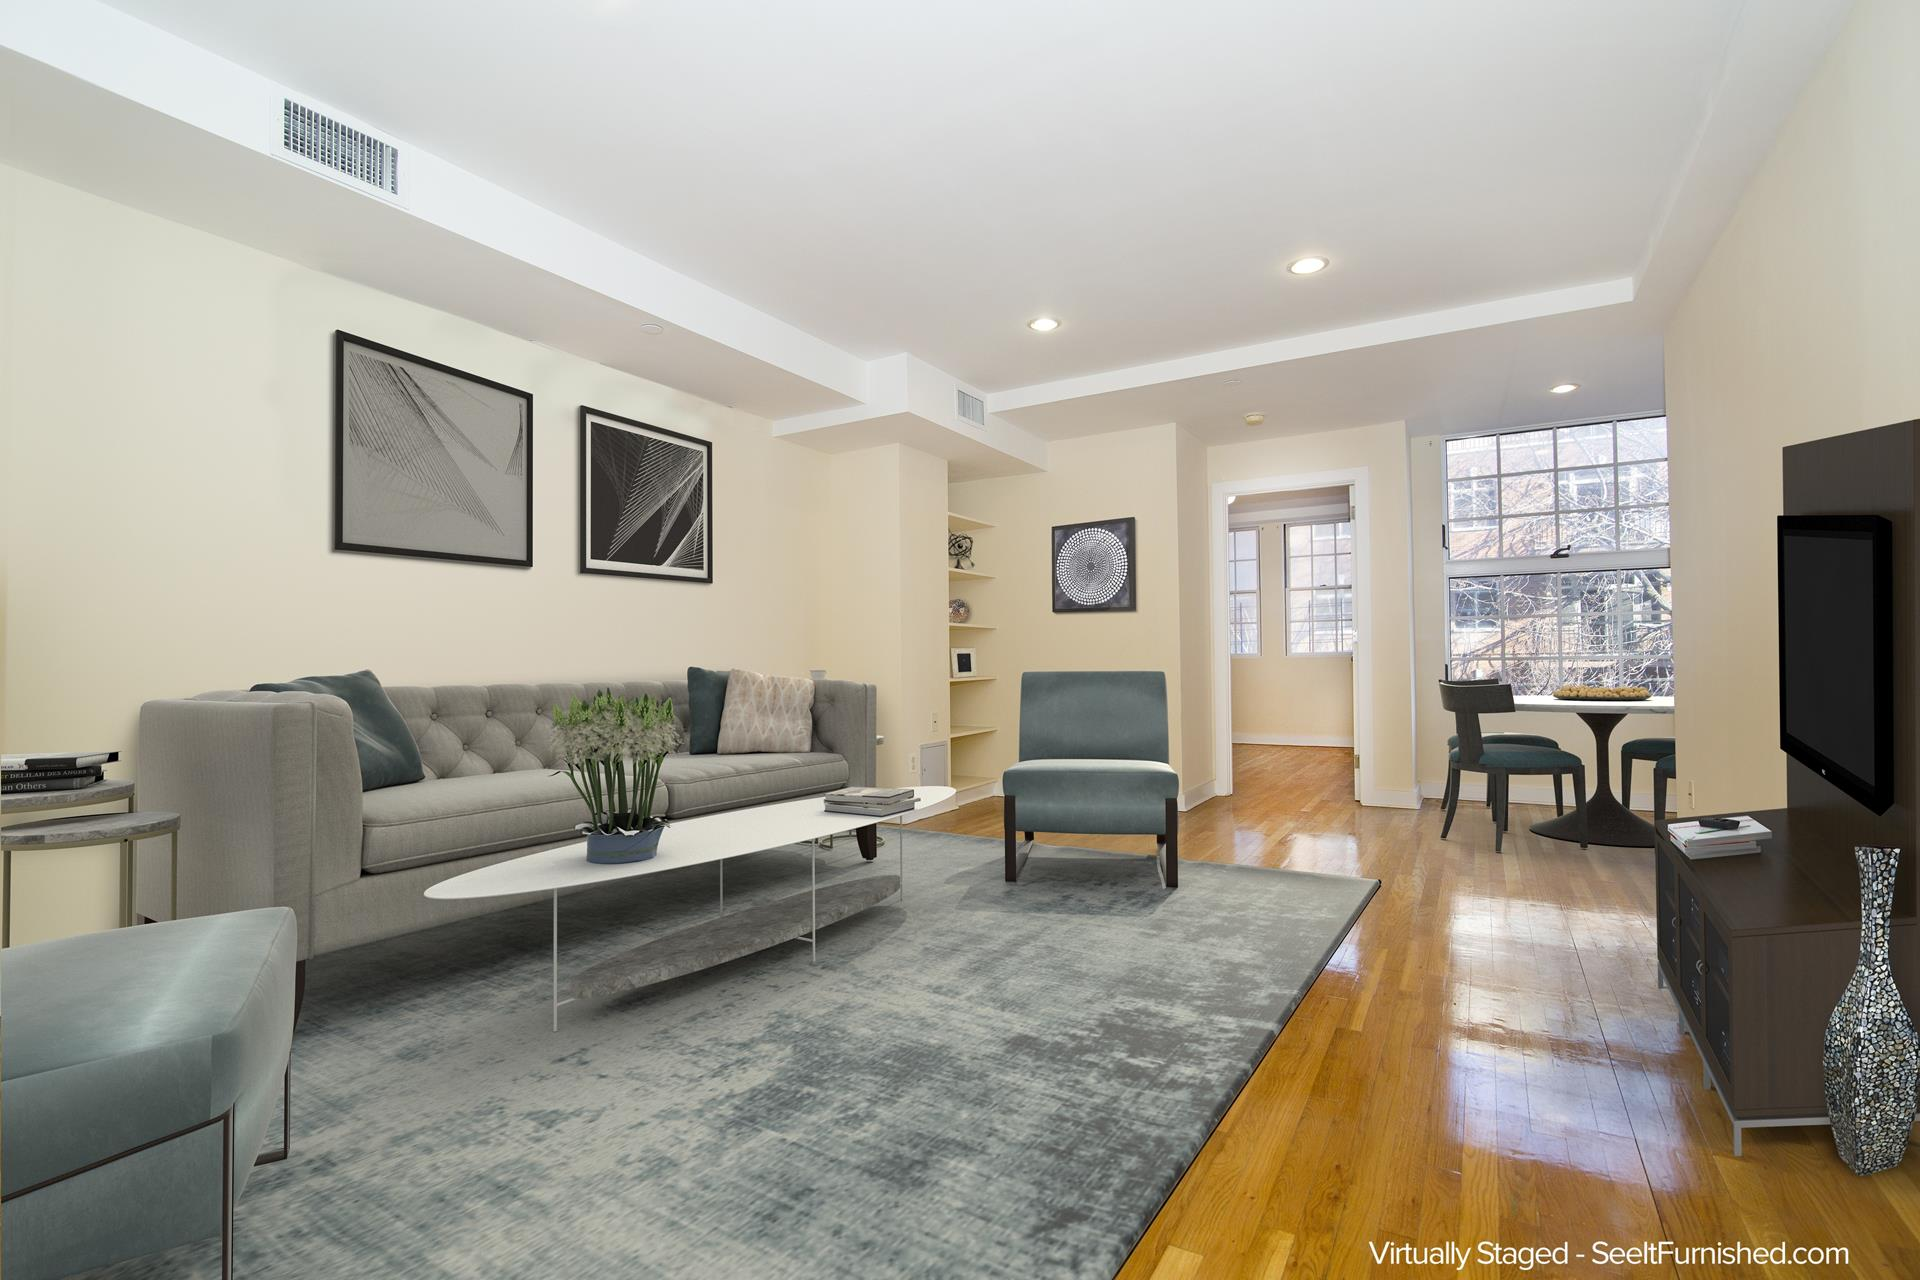 LUMBERYARD CONDO, 565 Carroll St, 3 - Park Slope, New York